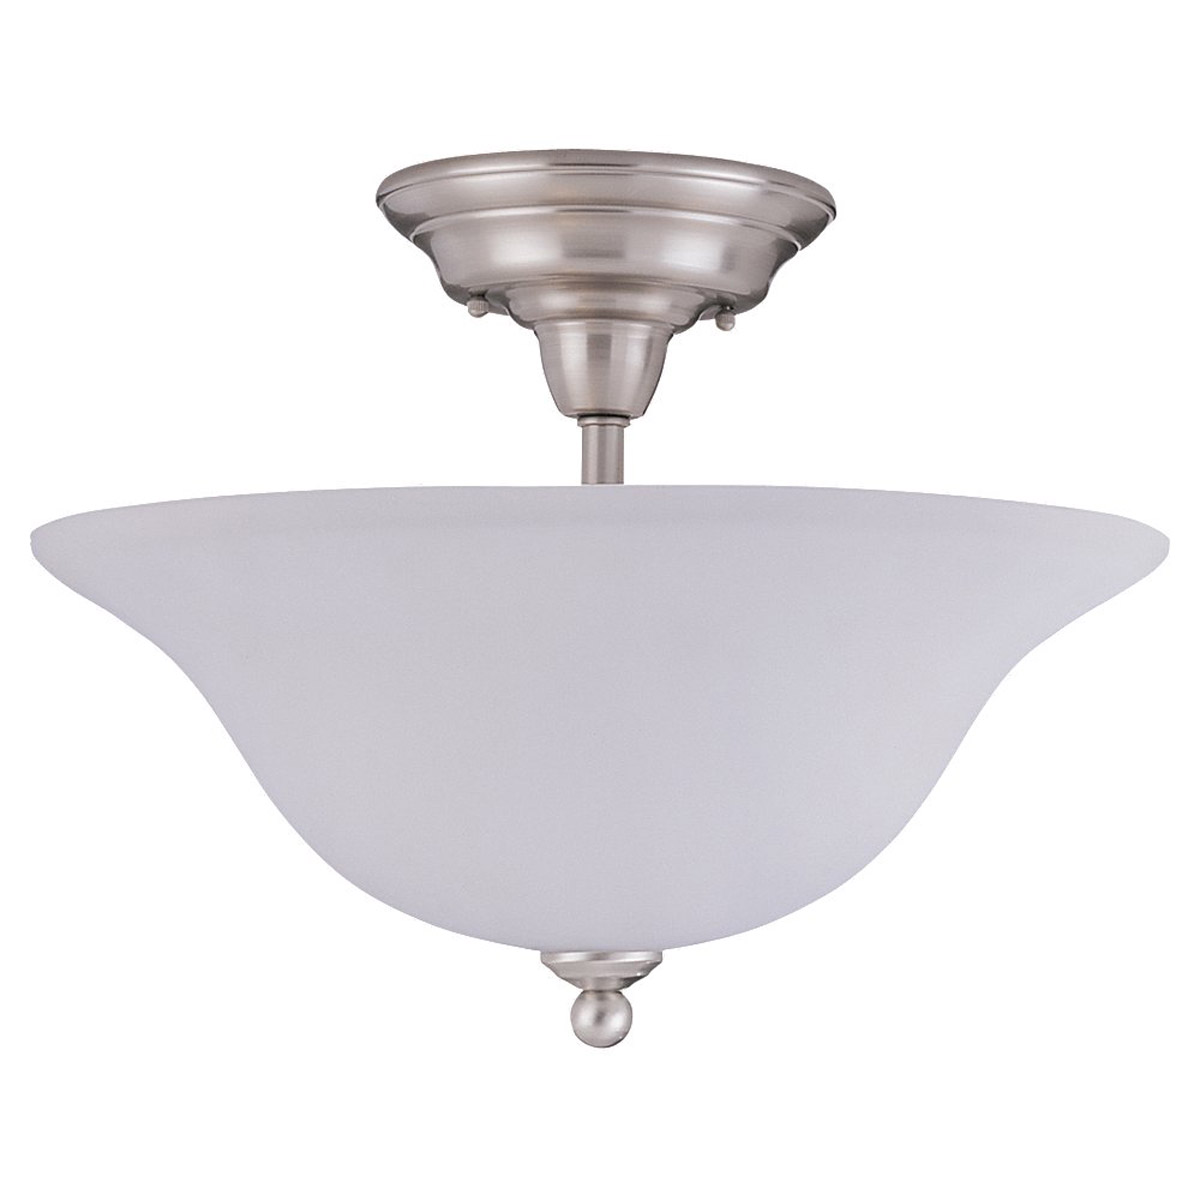 Sea Gull Lighting Sussex 3 Light Semi-Flush Mount in Brushed Nickel 79661BLE-962